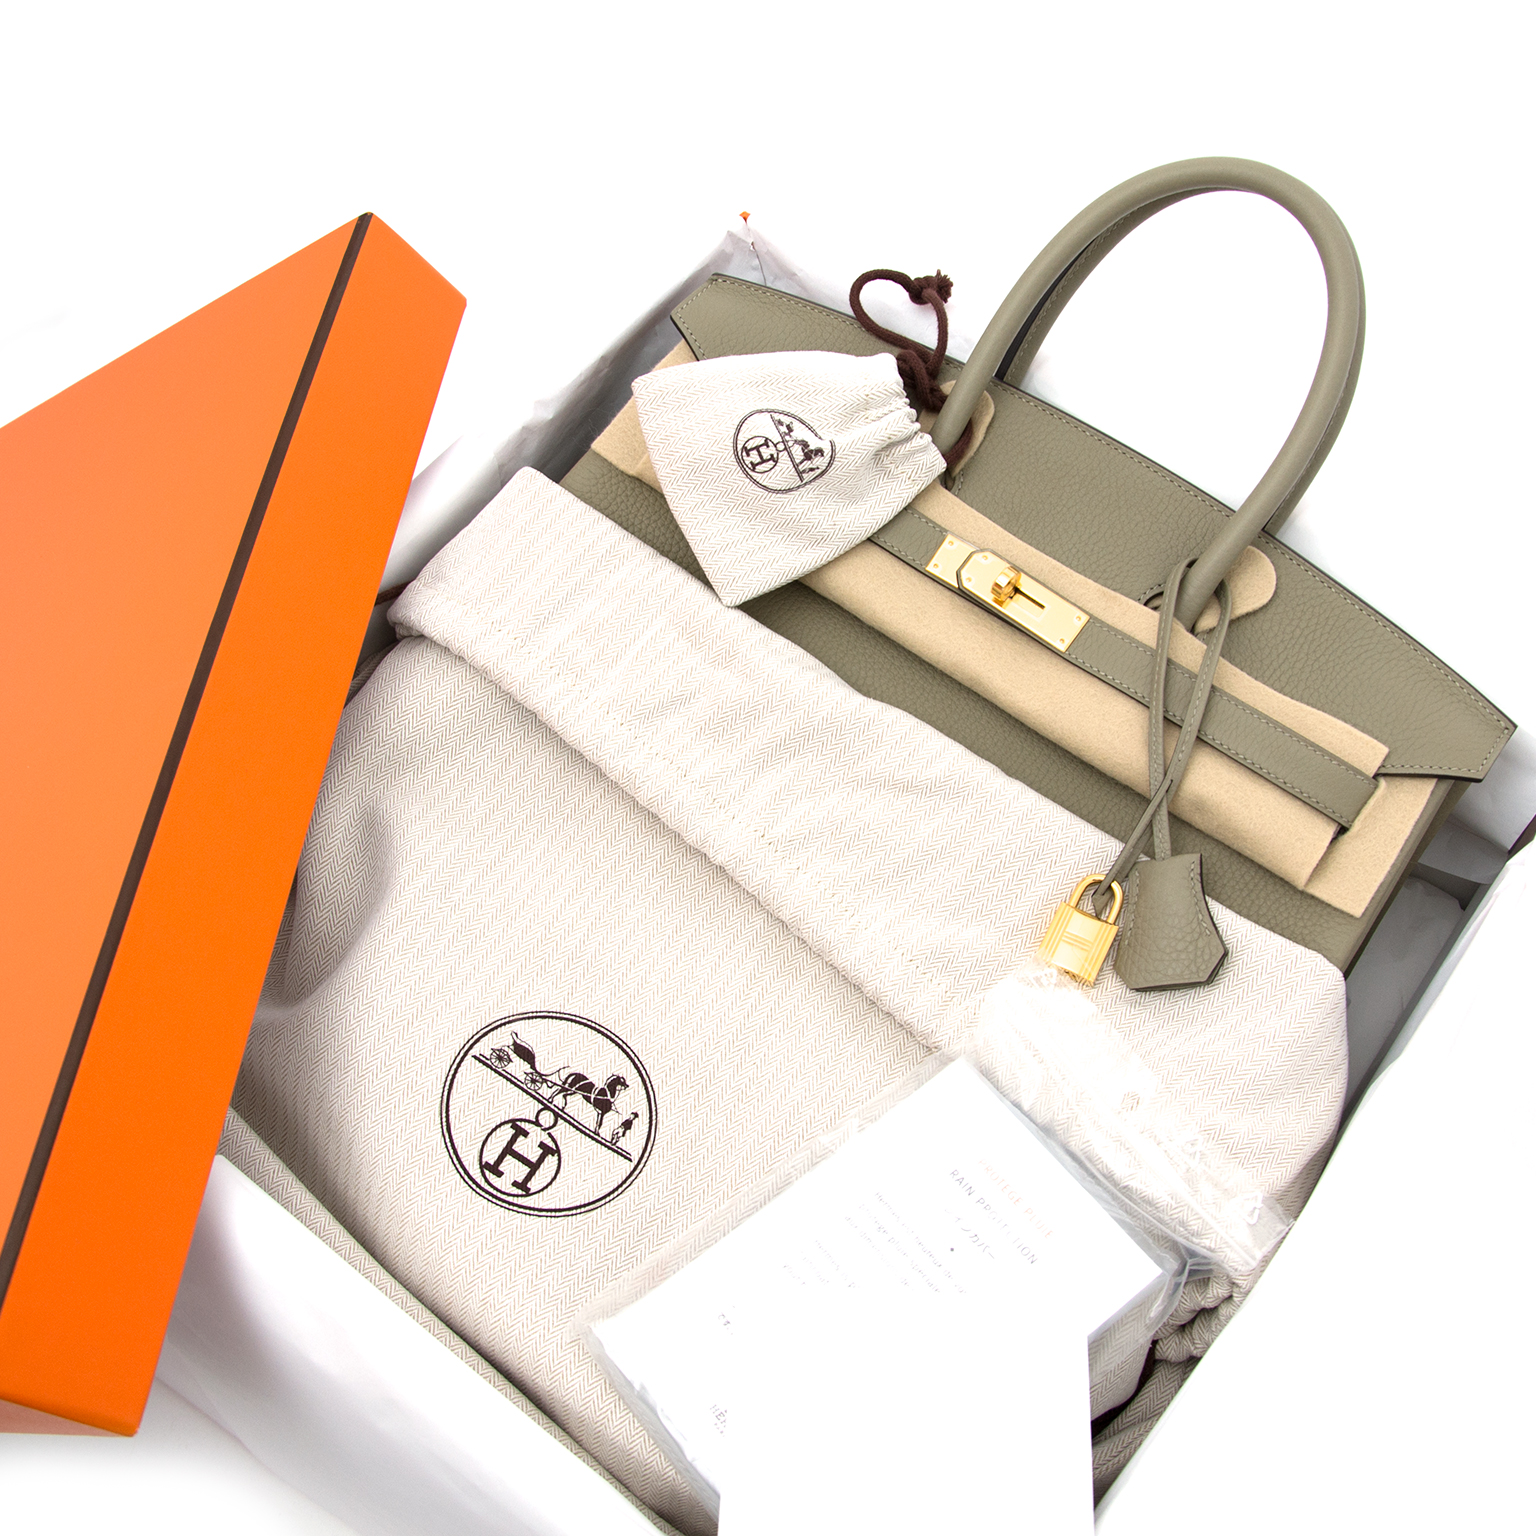 442ad55c660 ... 100% authentic Buy and sell your hermes birkin 35 taurillon clemence  sauge at labellov.com